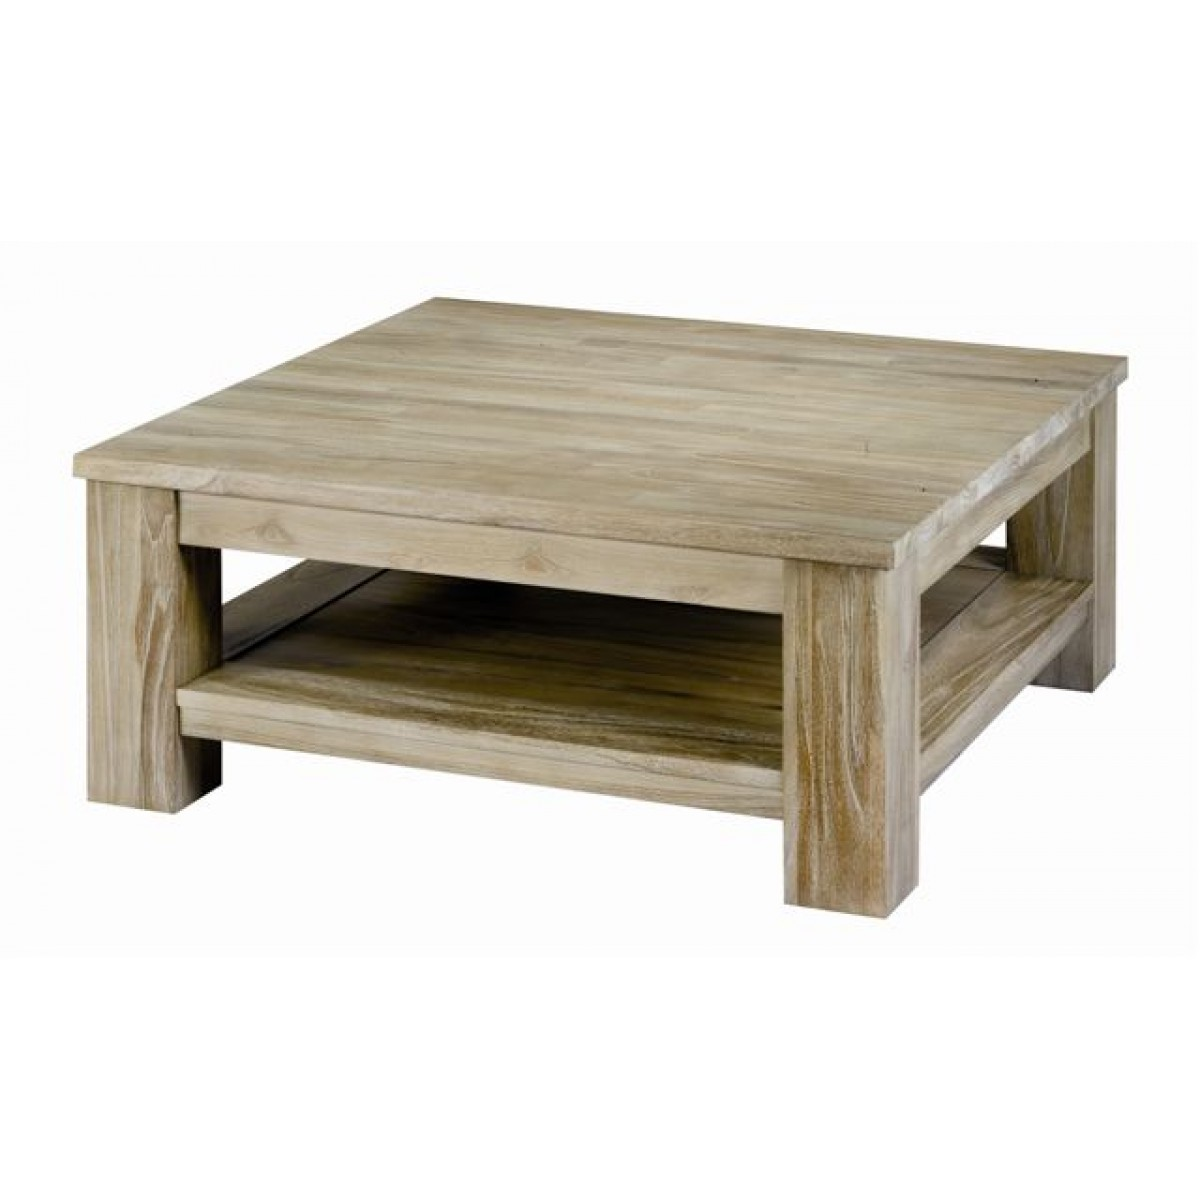 Table basse carree vitree en teck brut qualite for Table basse vitree